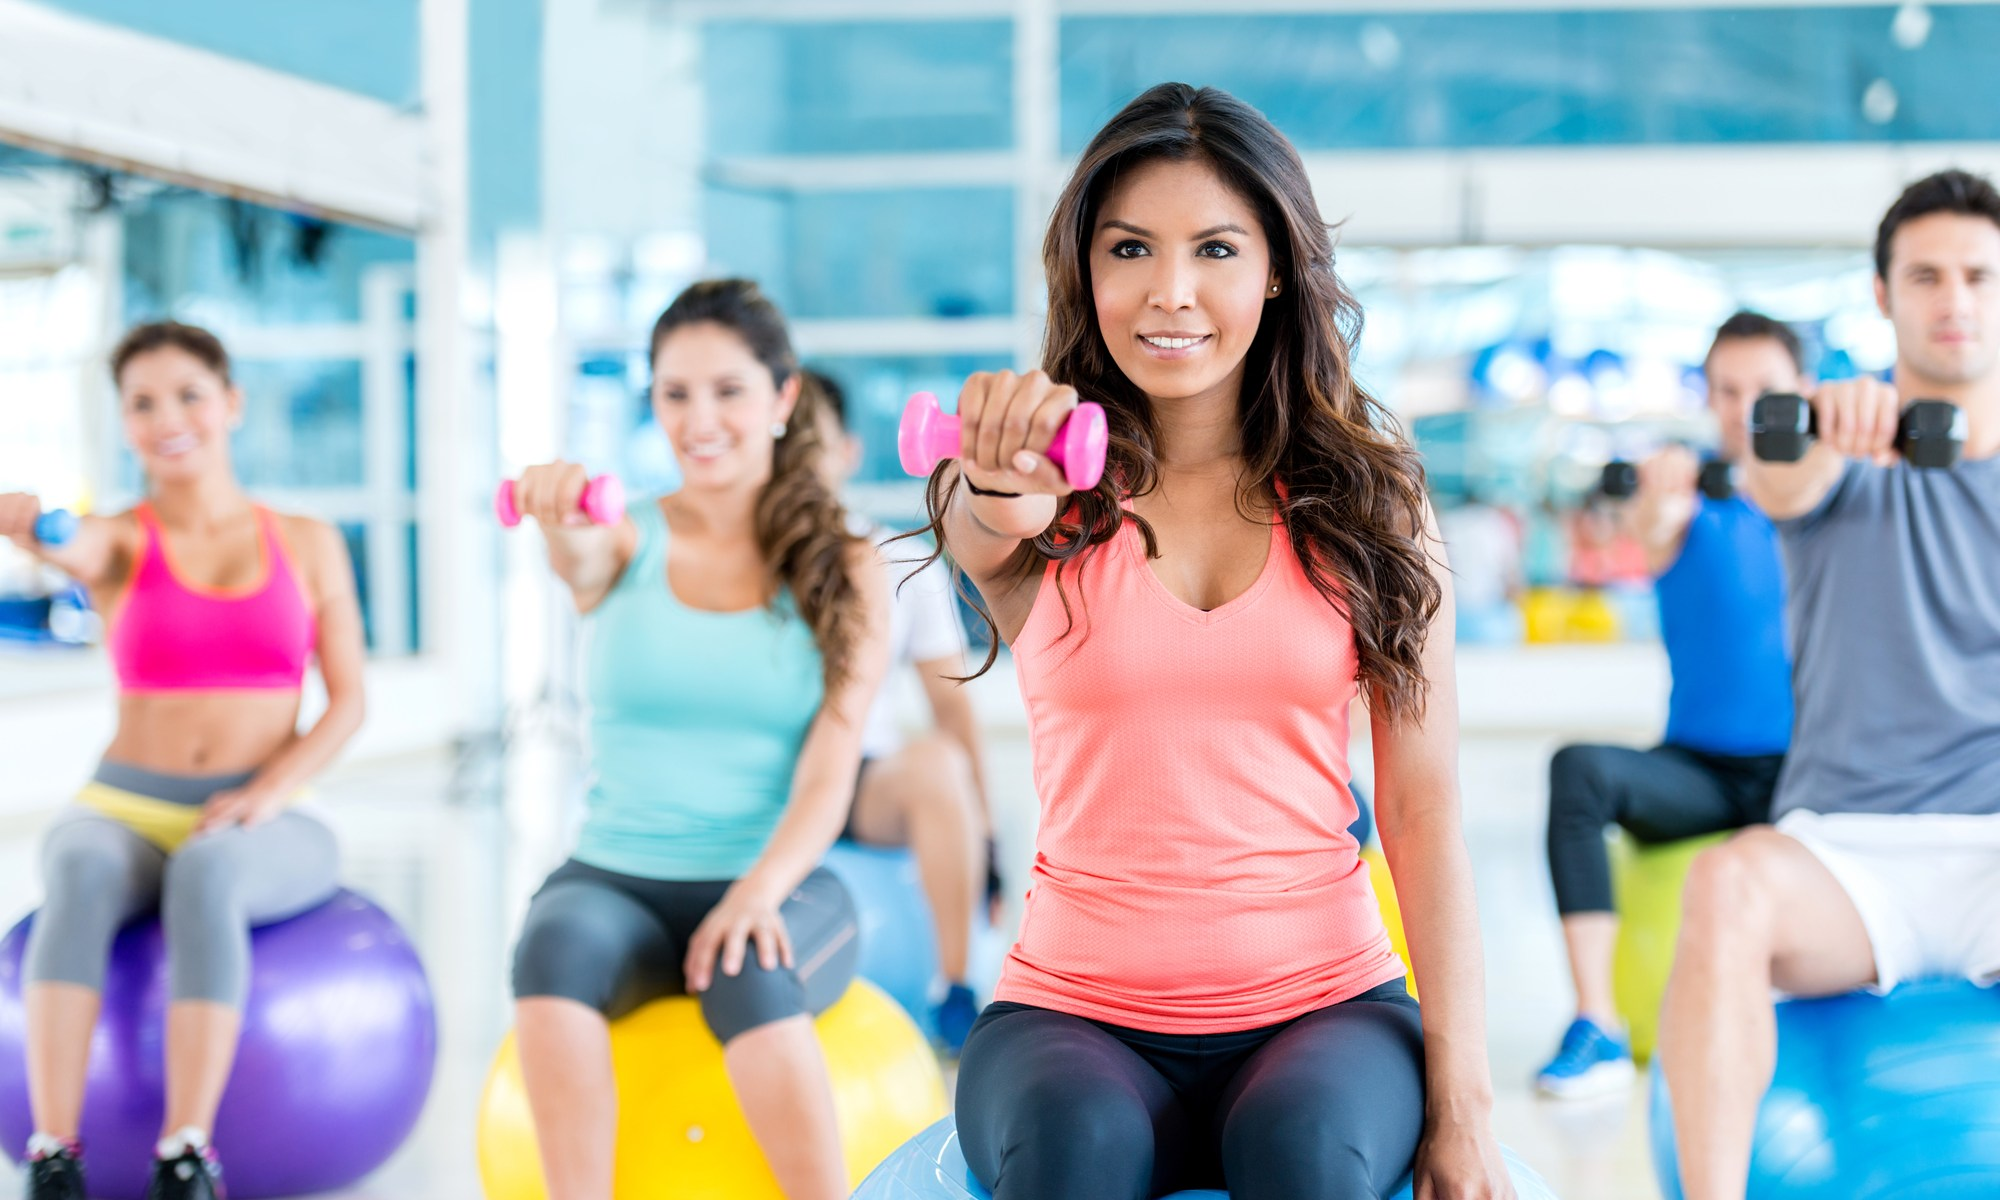 Women's Fitness Class Martinez GA FREE 14 DAY RAPID RESULTS TRAINING COURSE!